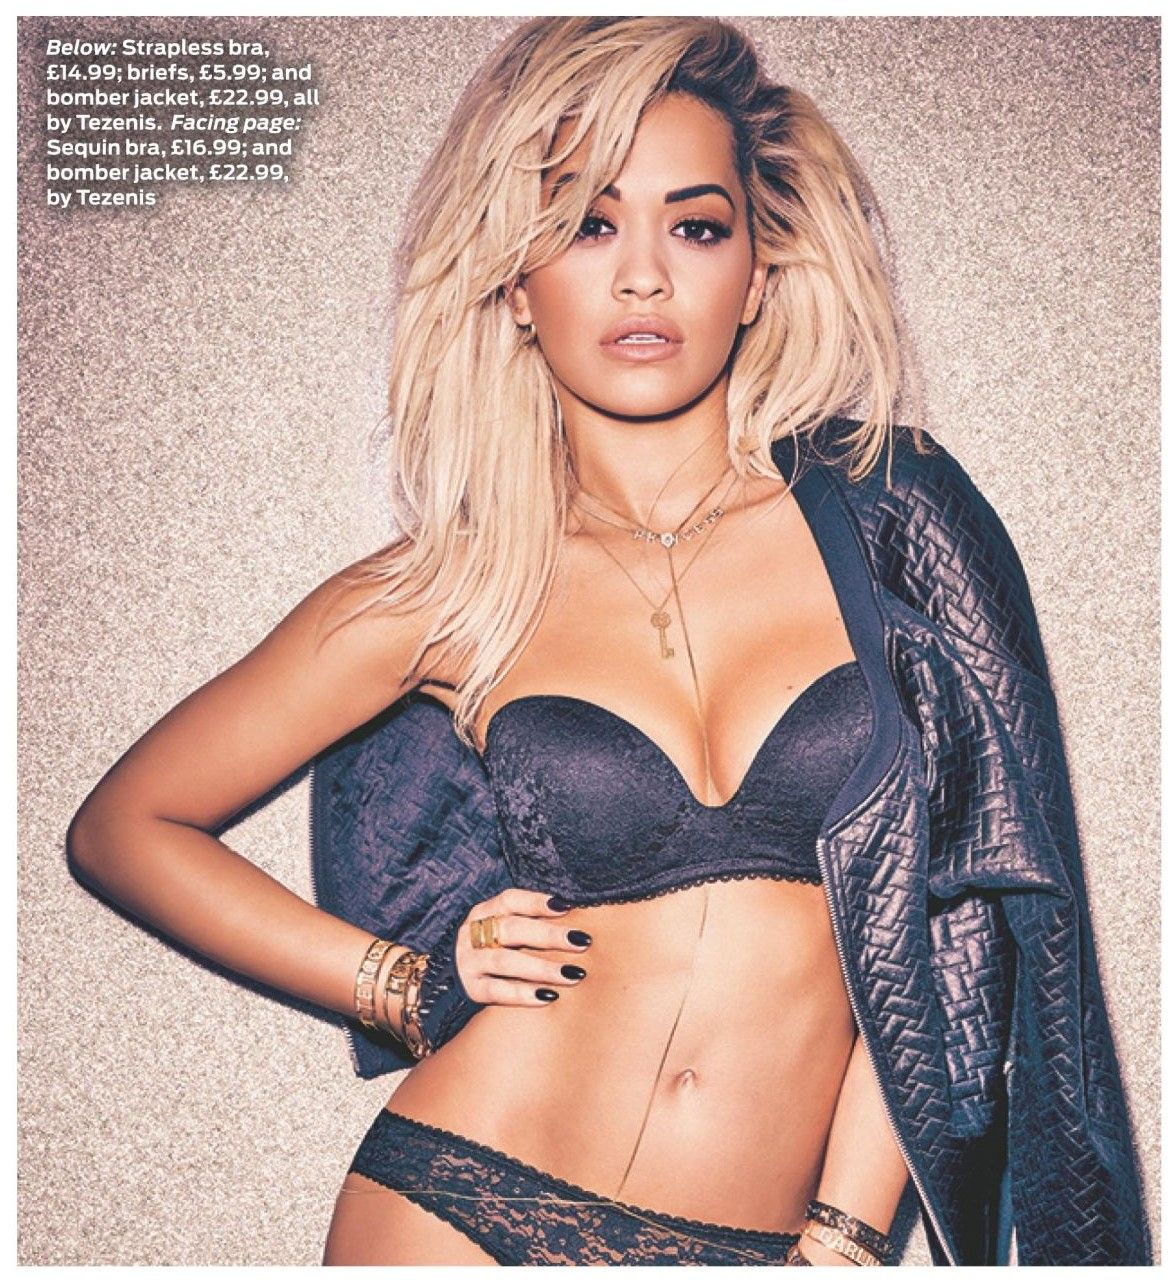 Rita Ora Sexy Photos